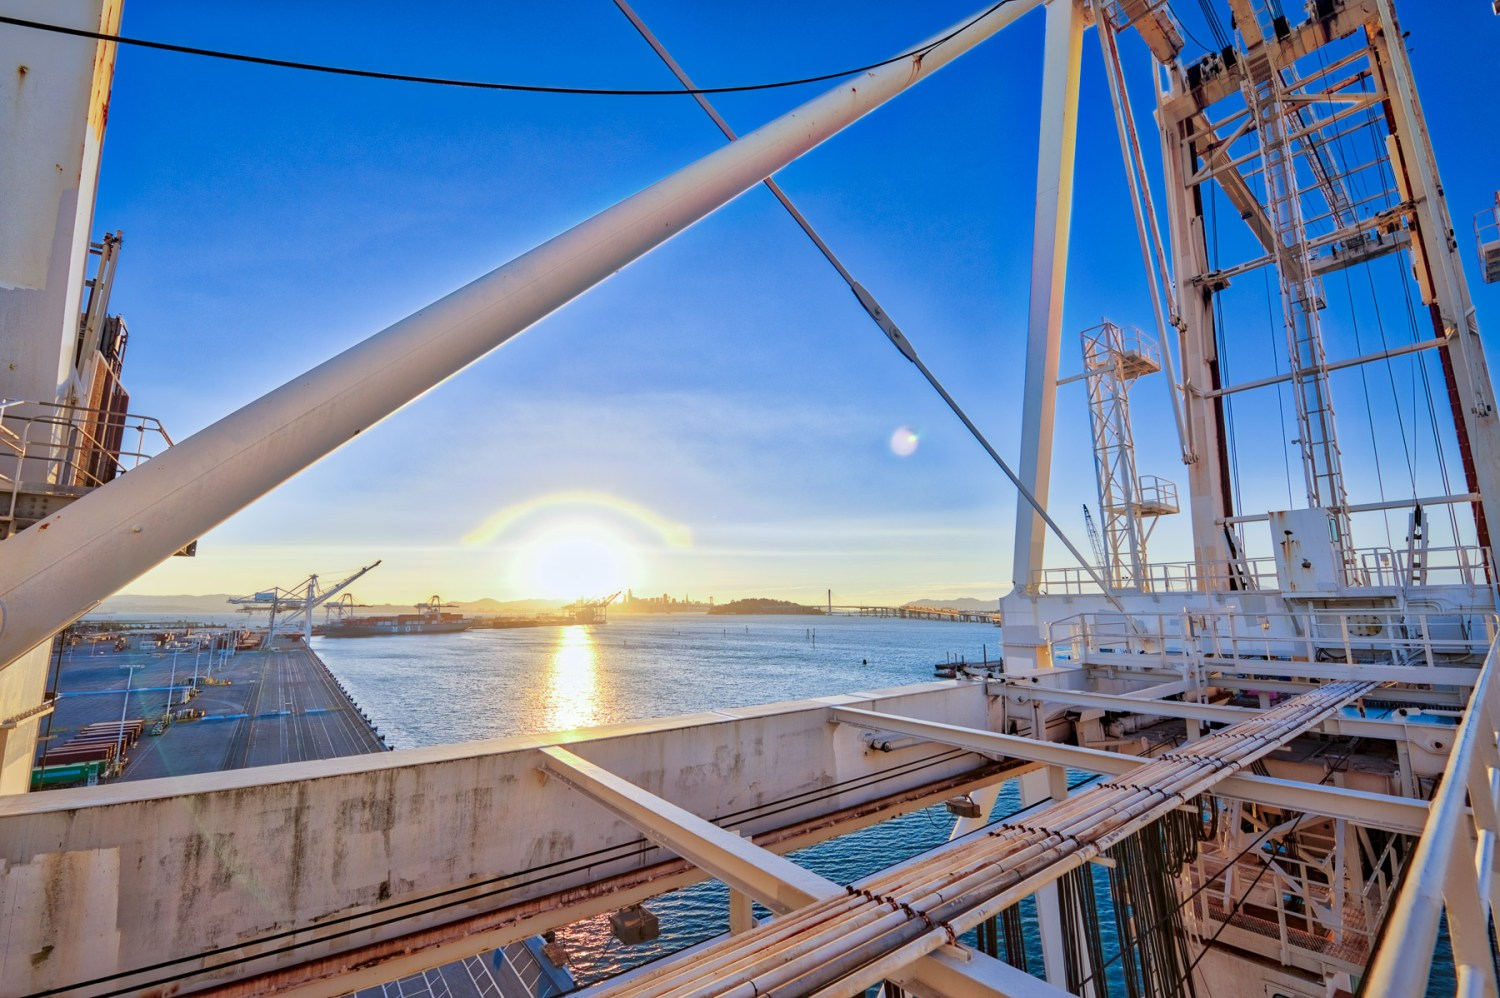 San Francisco Bay Area Industrial Shipping Port Crane Sunset City - Niall David Photography-2454